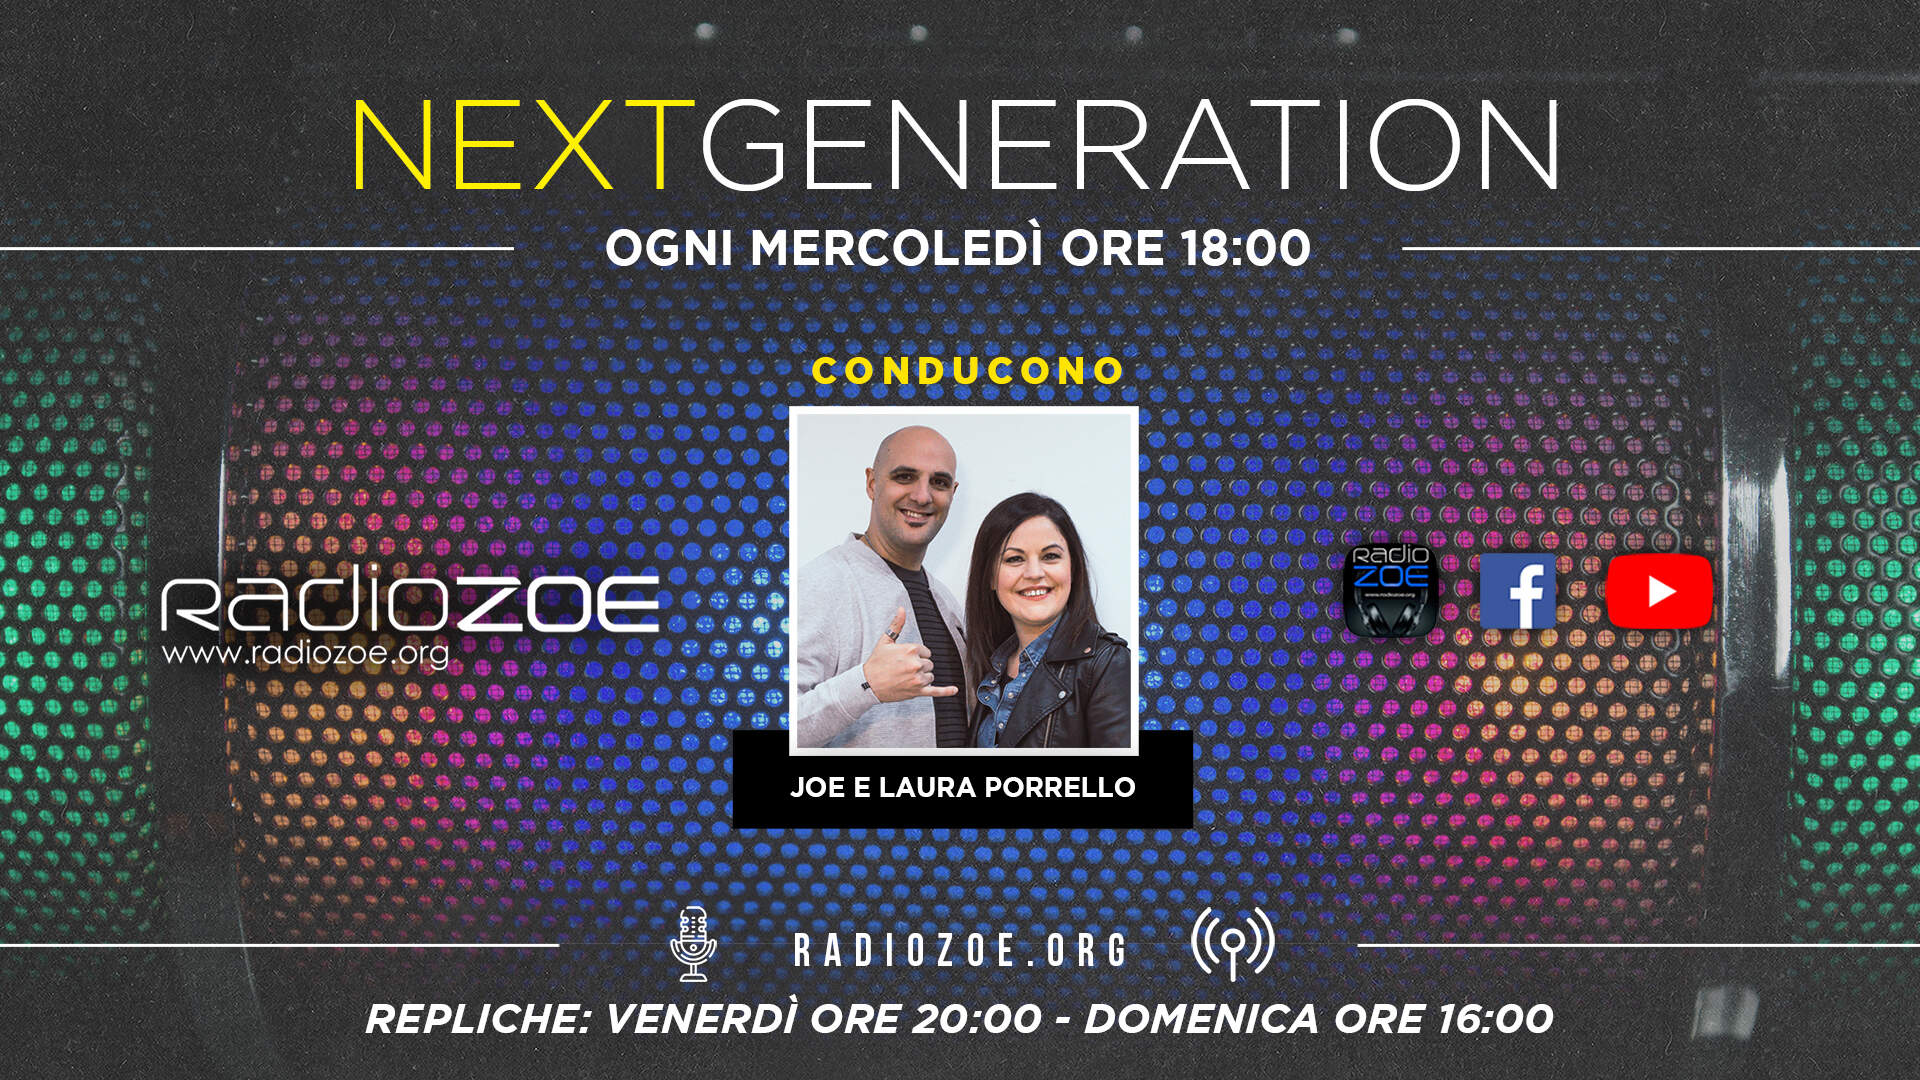 """Next Generation"", il nuovo programma condotto da Joe Porrello."